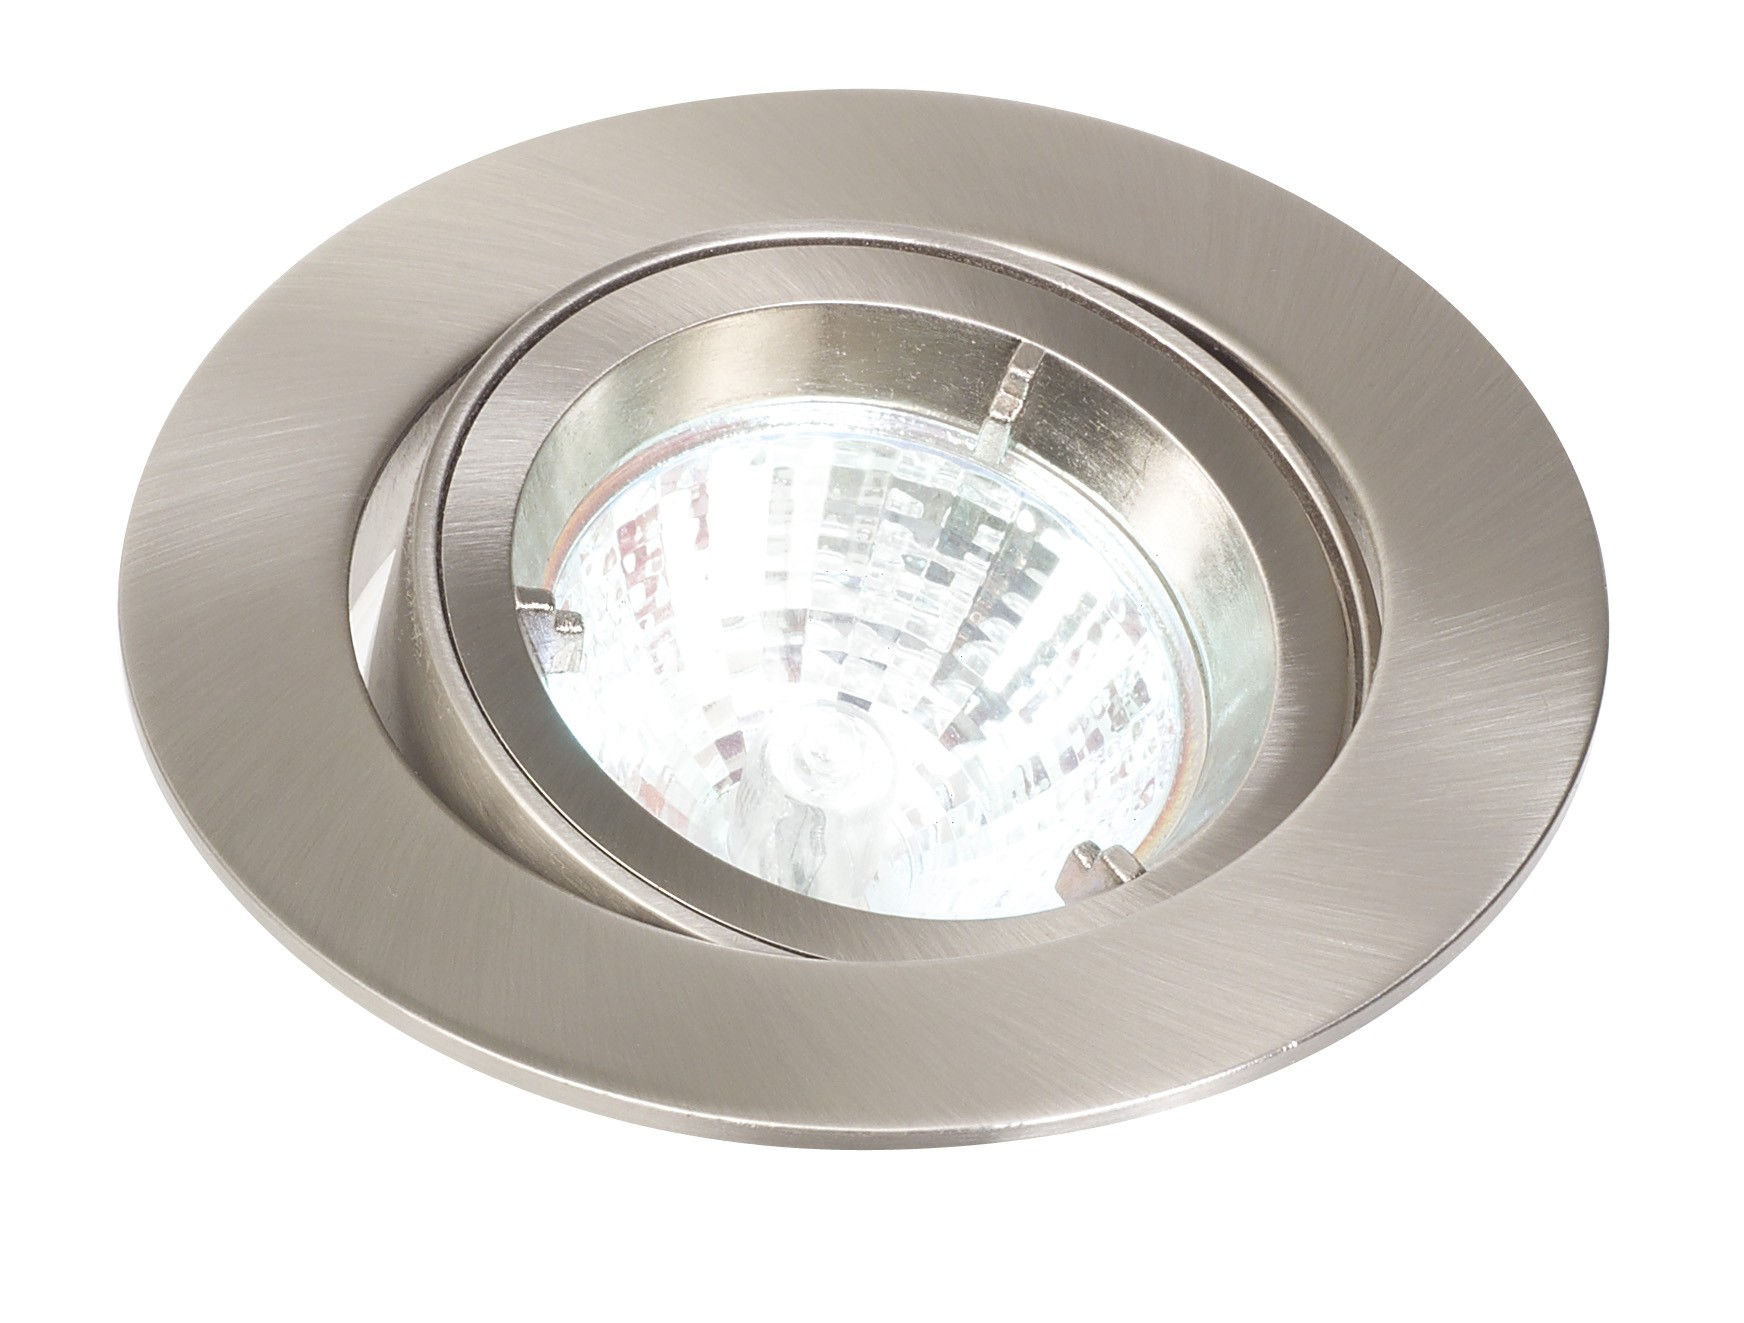 Ceiling downlight mains cast tilt white